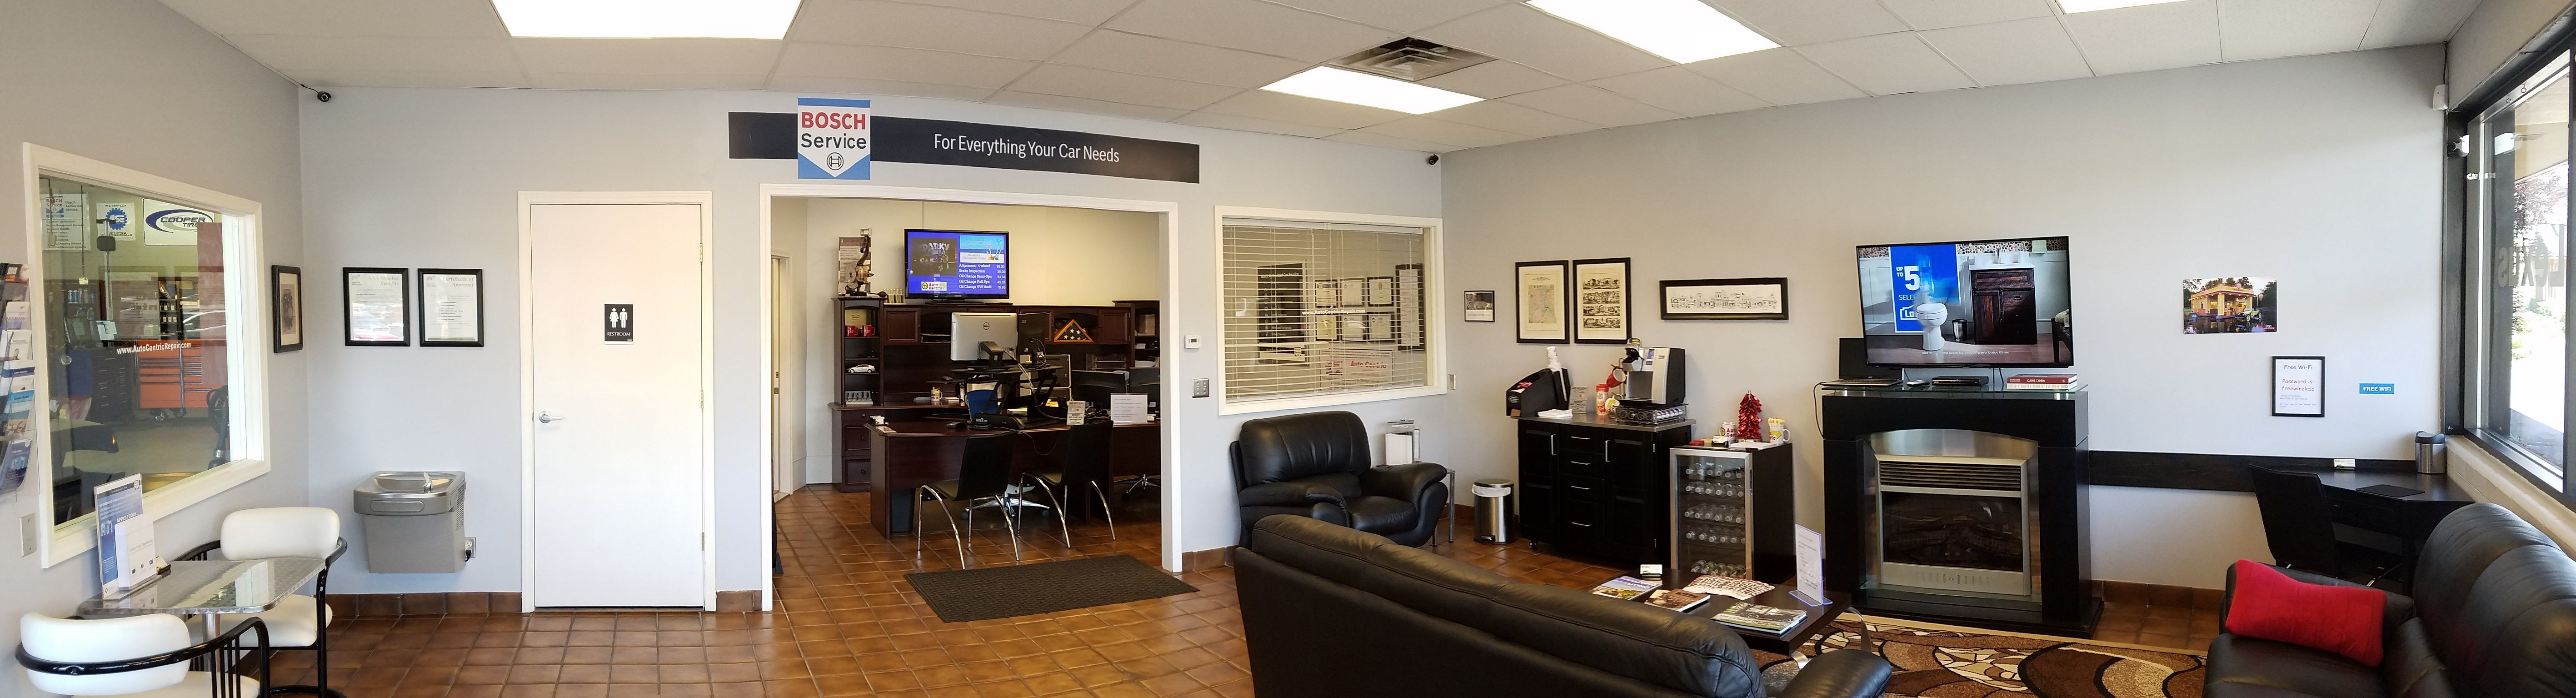 Phenomenal Customer Waiting Area Tips Automotive Management Network Home Interior And Landscaping Ologienasavecom